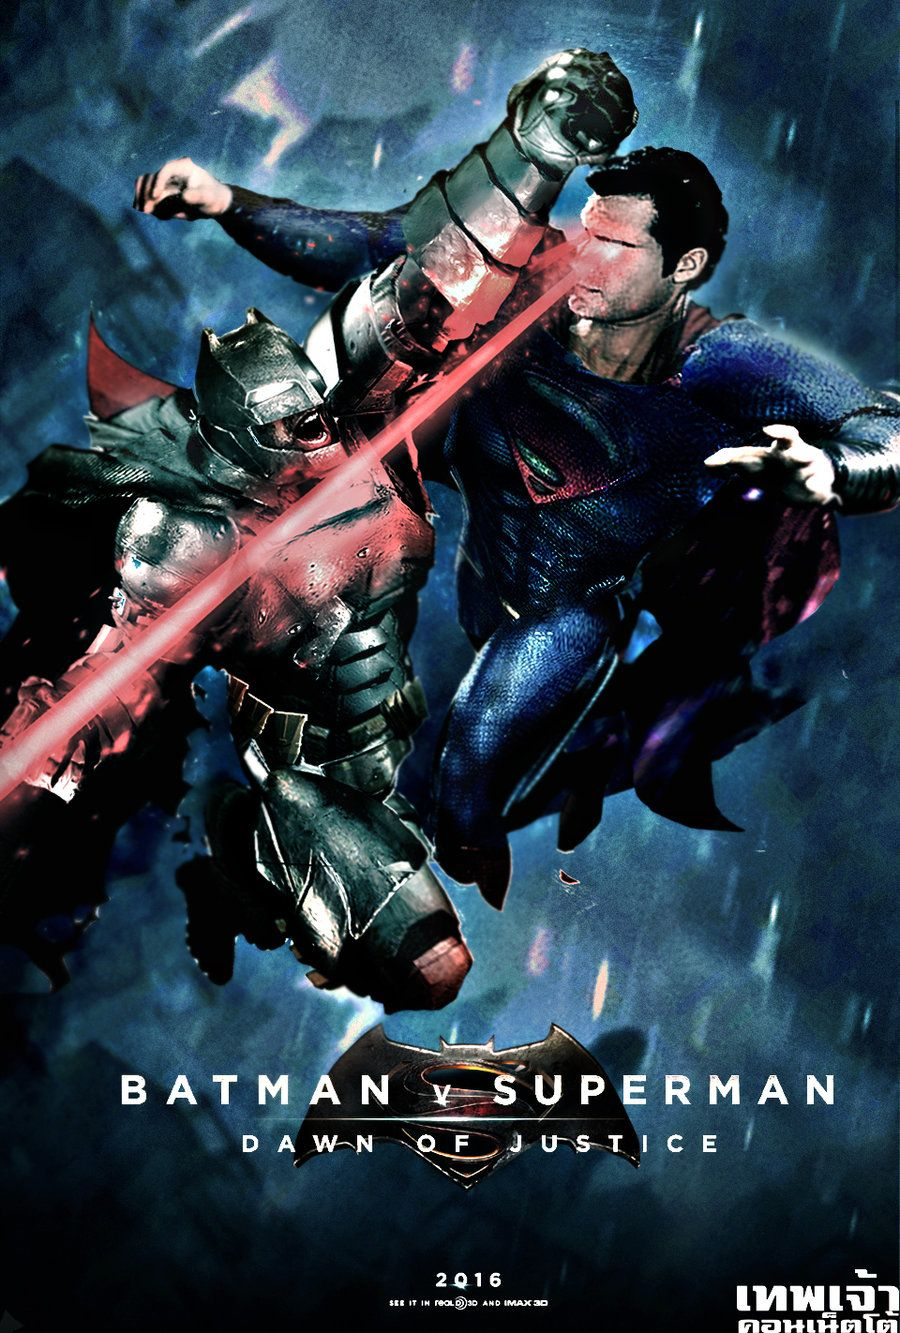 Batman vs superman dawn of justice posters pesquisa - Super batman movie ...